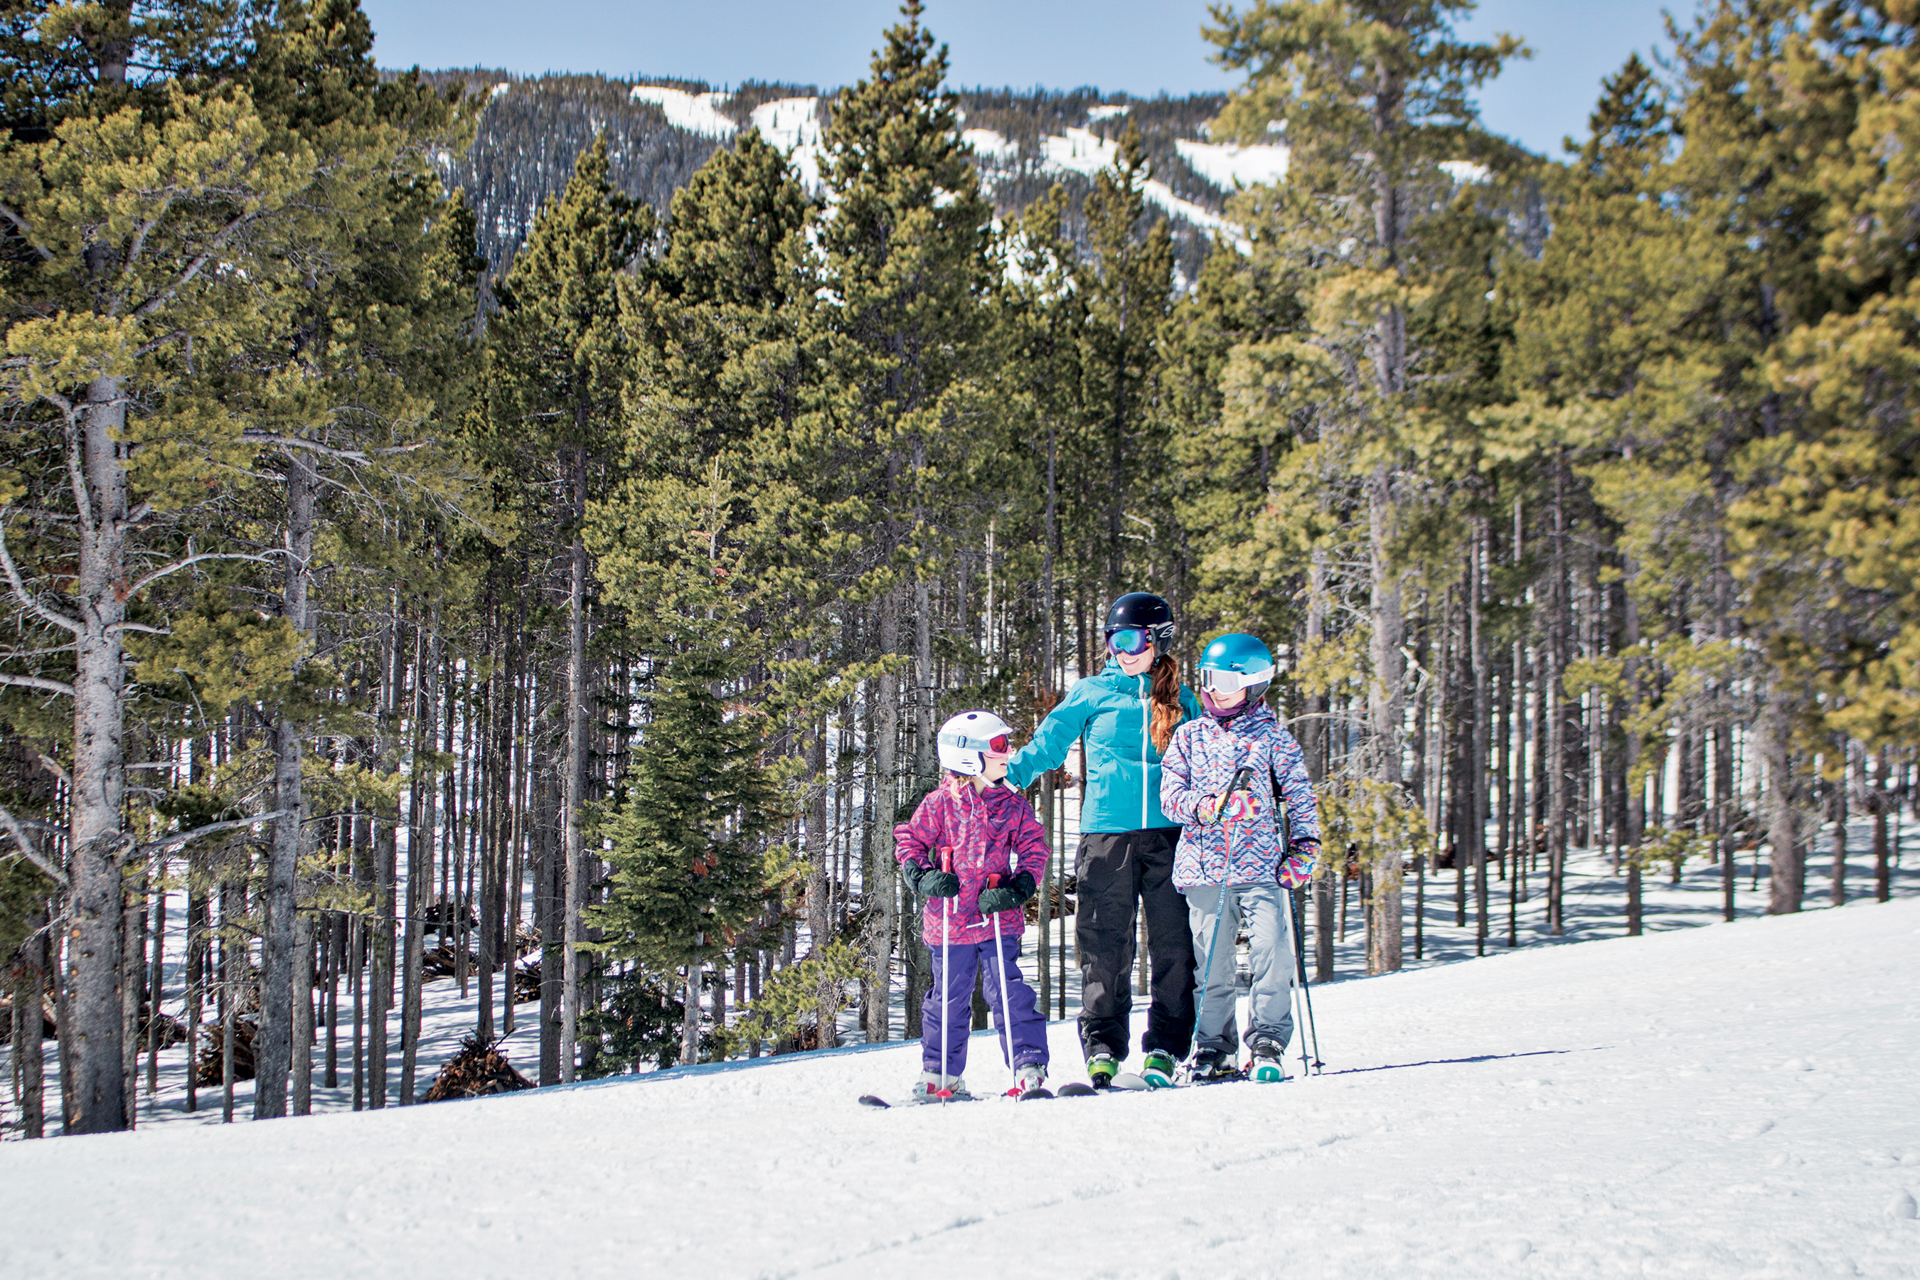 Red Lodge And Discovery Ski Area Offer Family Ski Packages